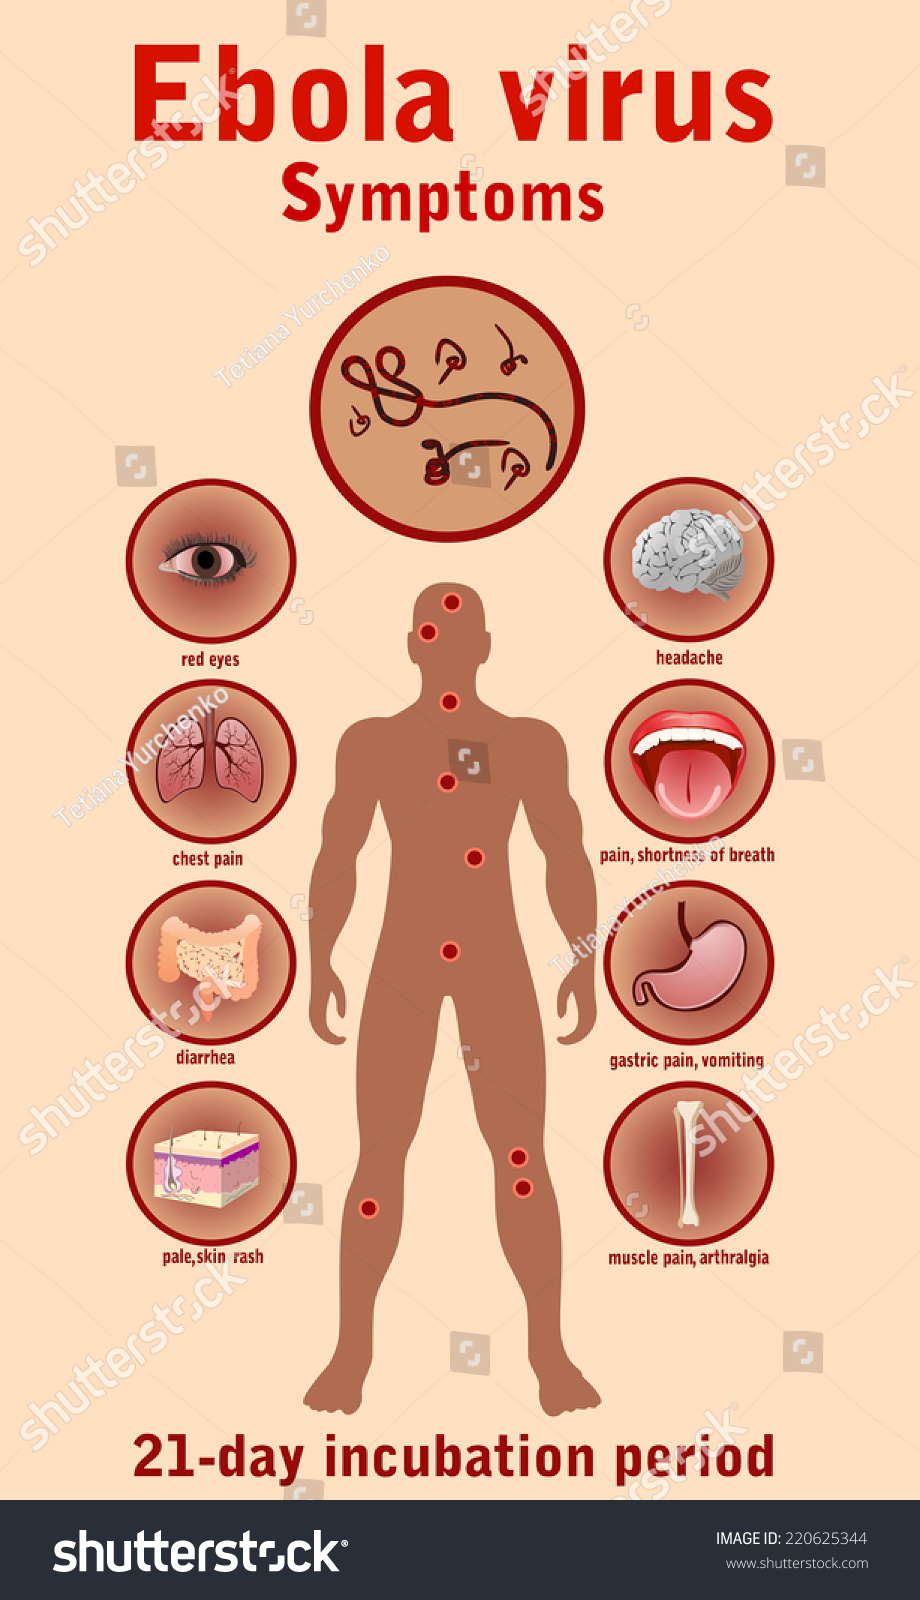 ebola virus history symptoms and treatment Treatment for ebola focuses on offering supportive care so that the patient's own immune system can fight off the virus the predominant symptoms of acute ebola infection are severe vomiting and.